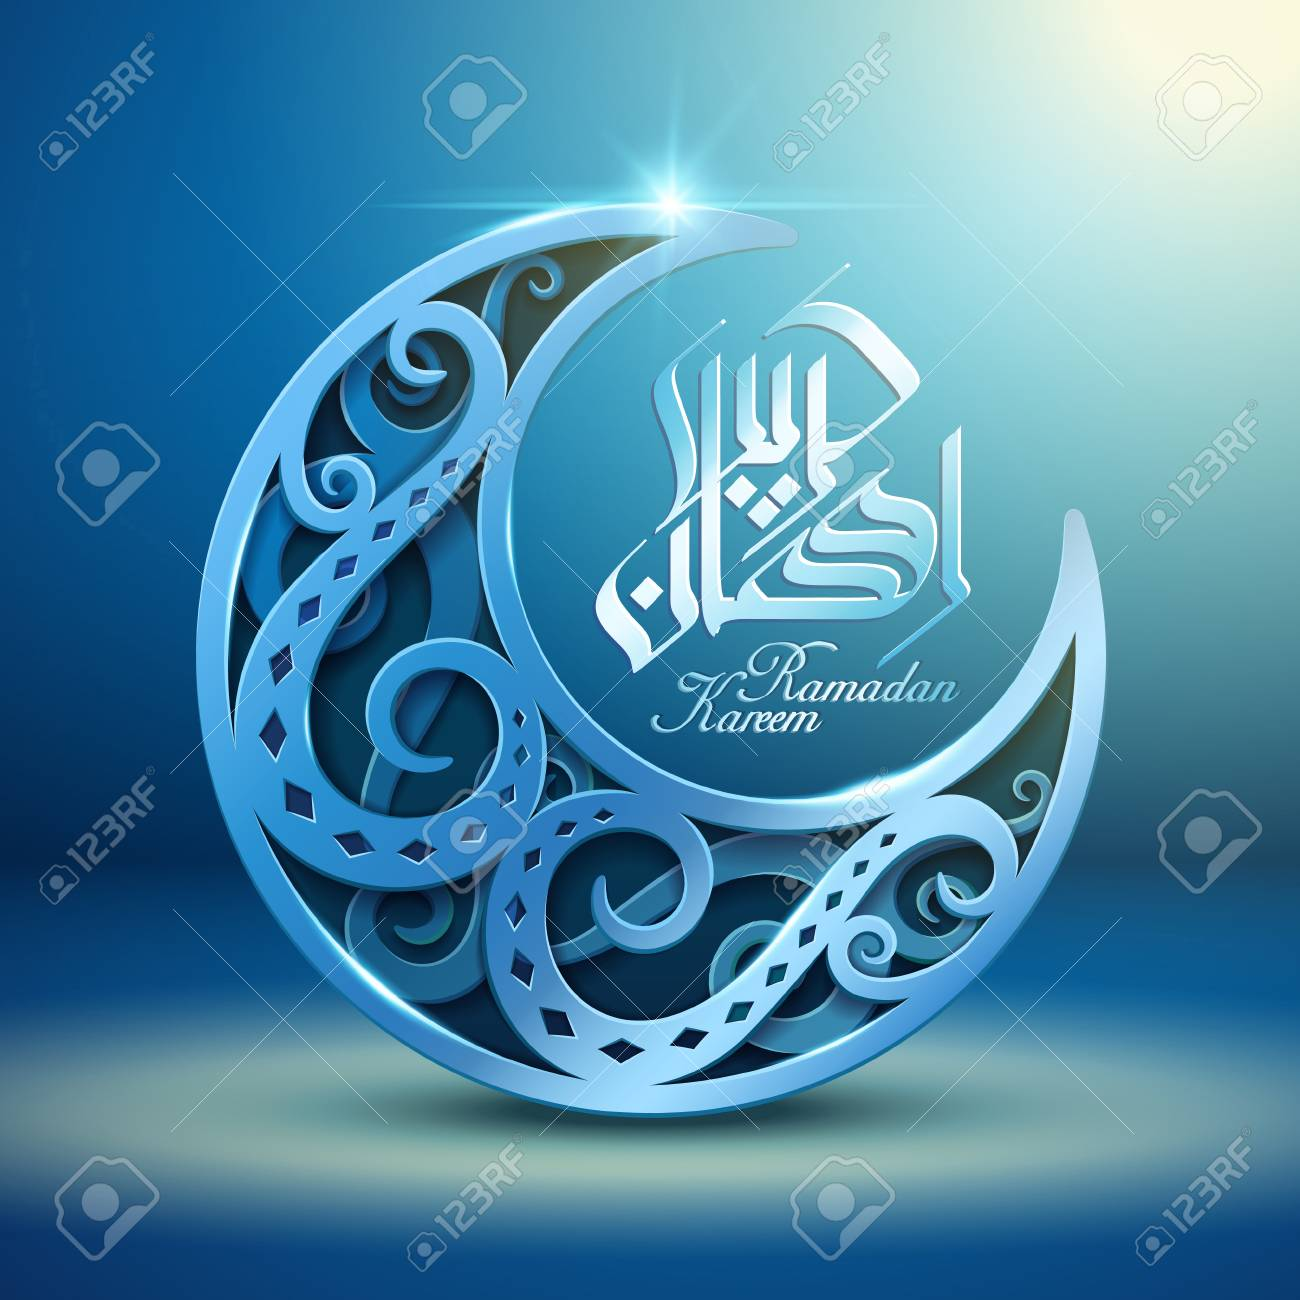 Light Blue Arabic Calligraphy Design For Ramadan Kareem And Beautifully Carved Crescent Moon Stock Vector